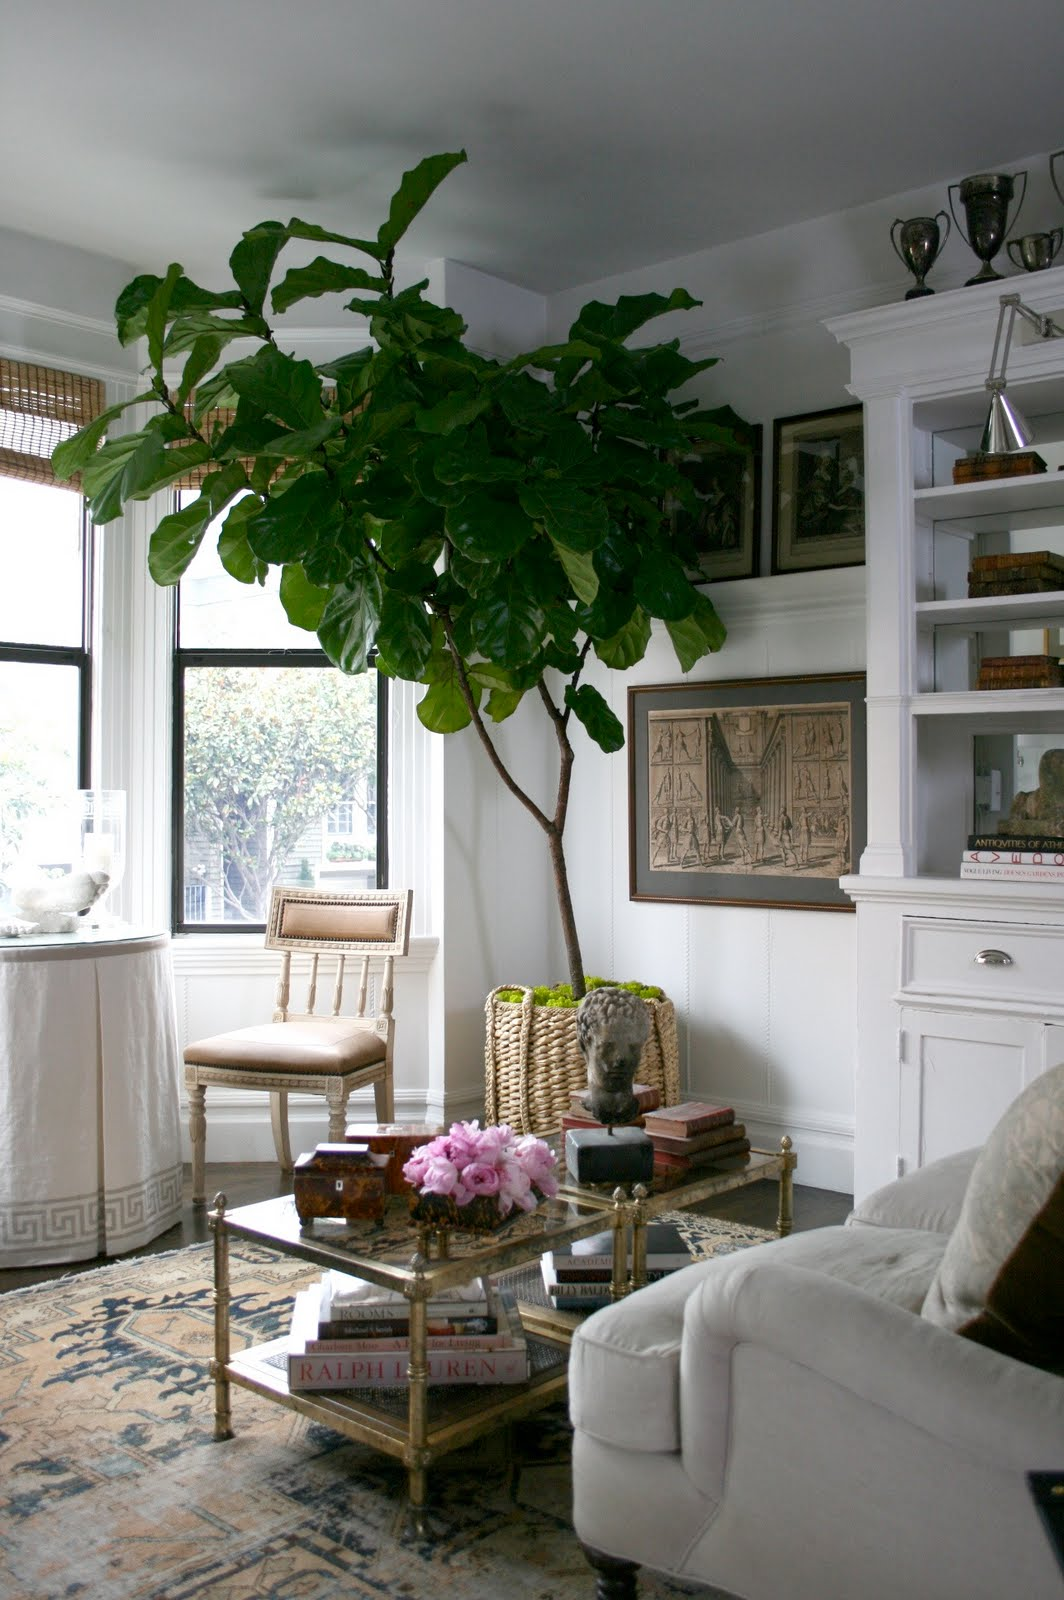 Big Plants For Living Room My Pear Tree House A Hankering For An Inside Tree